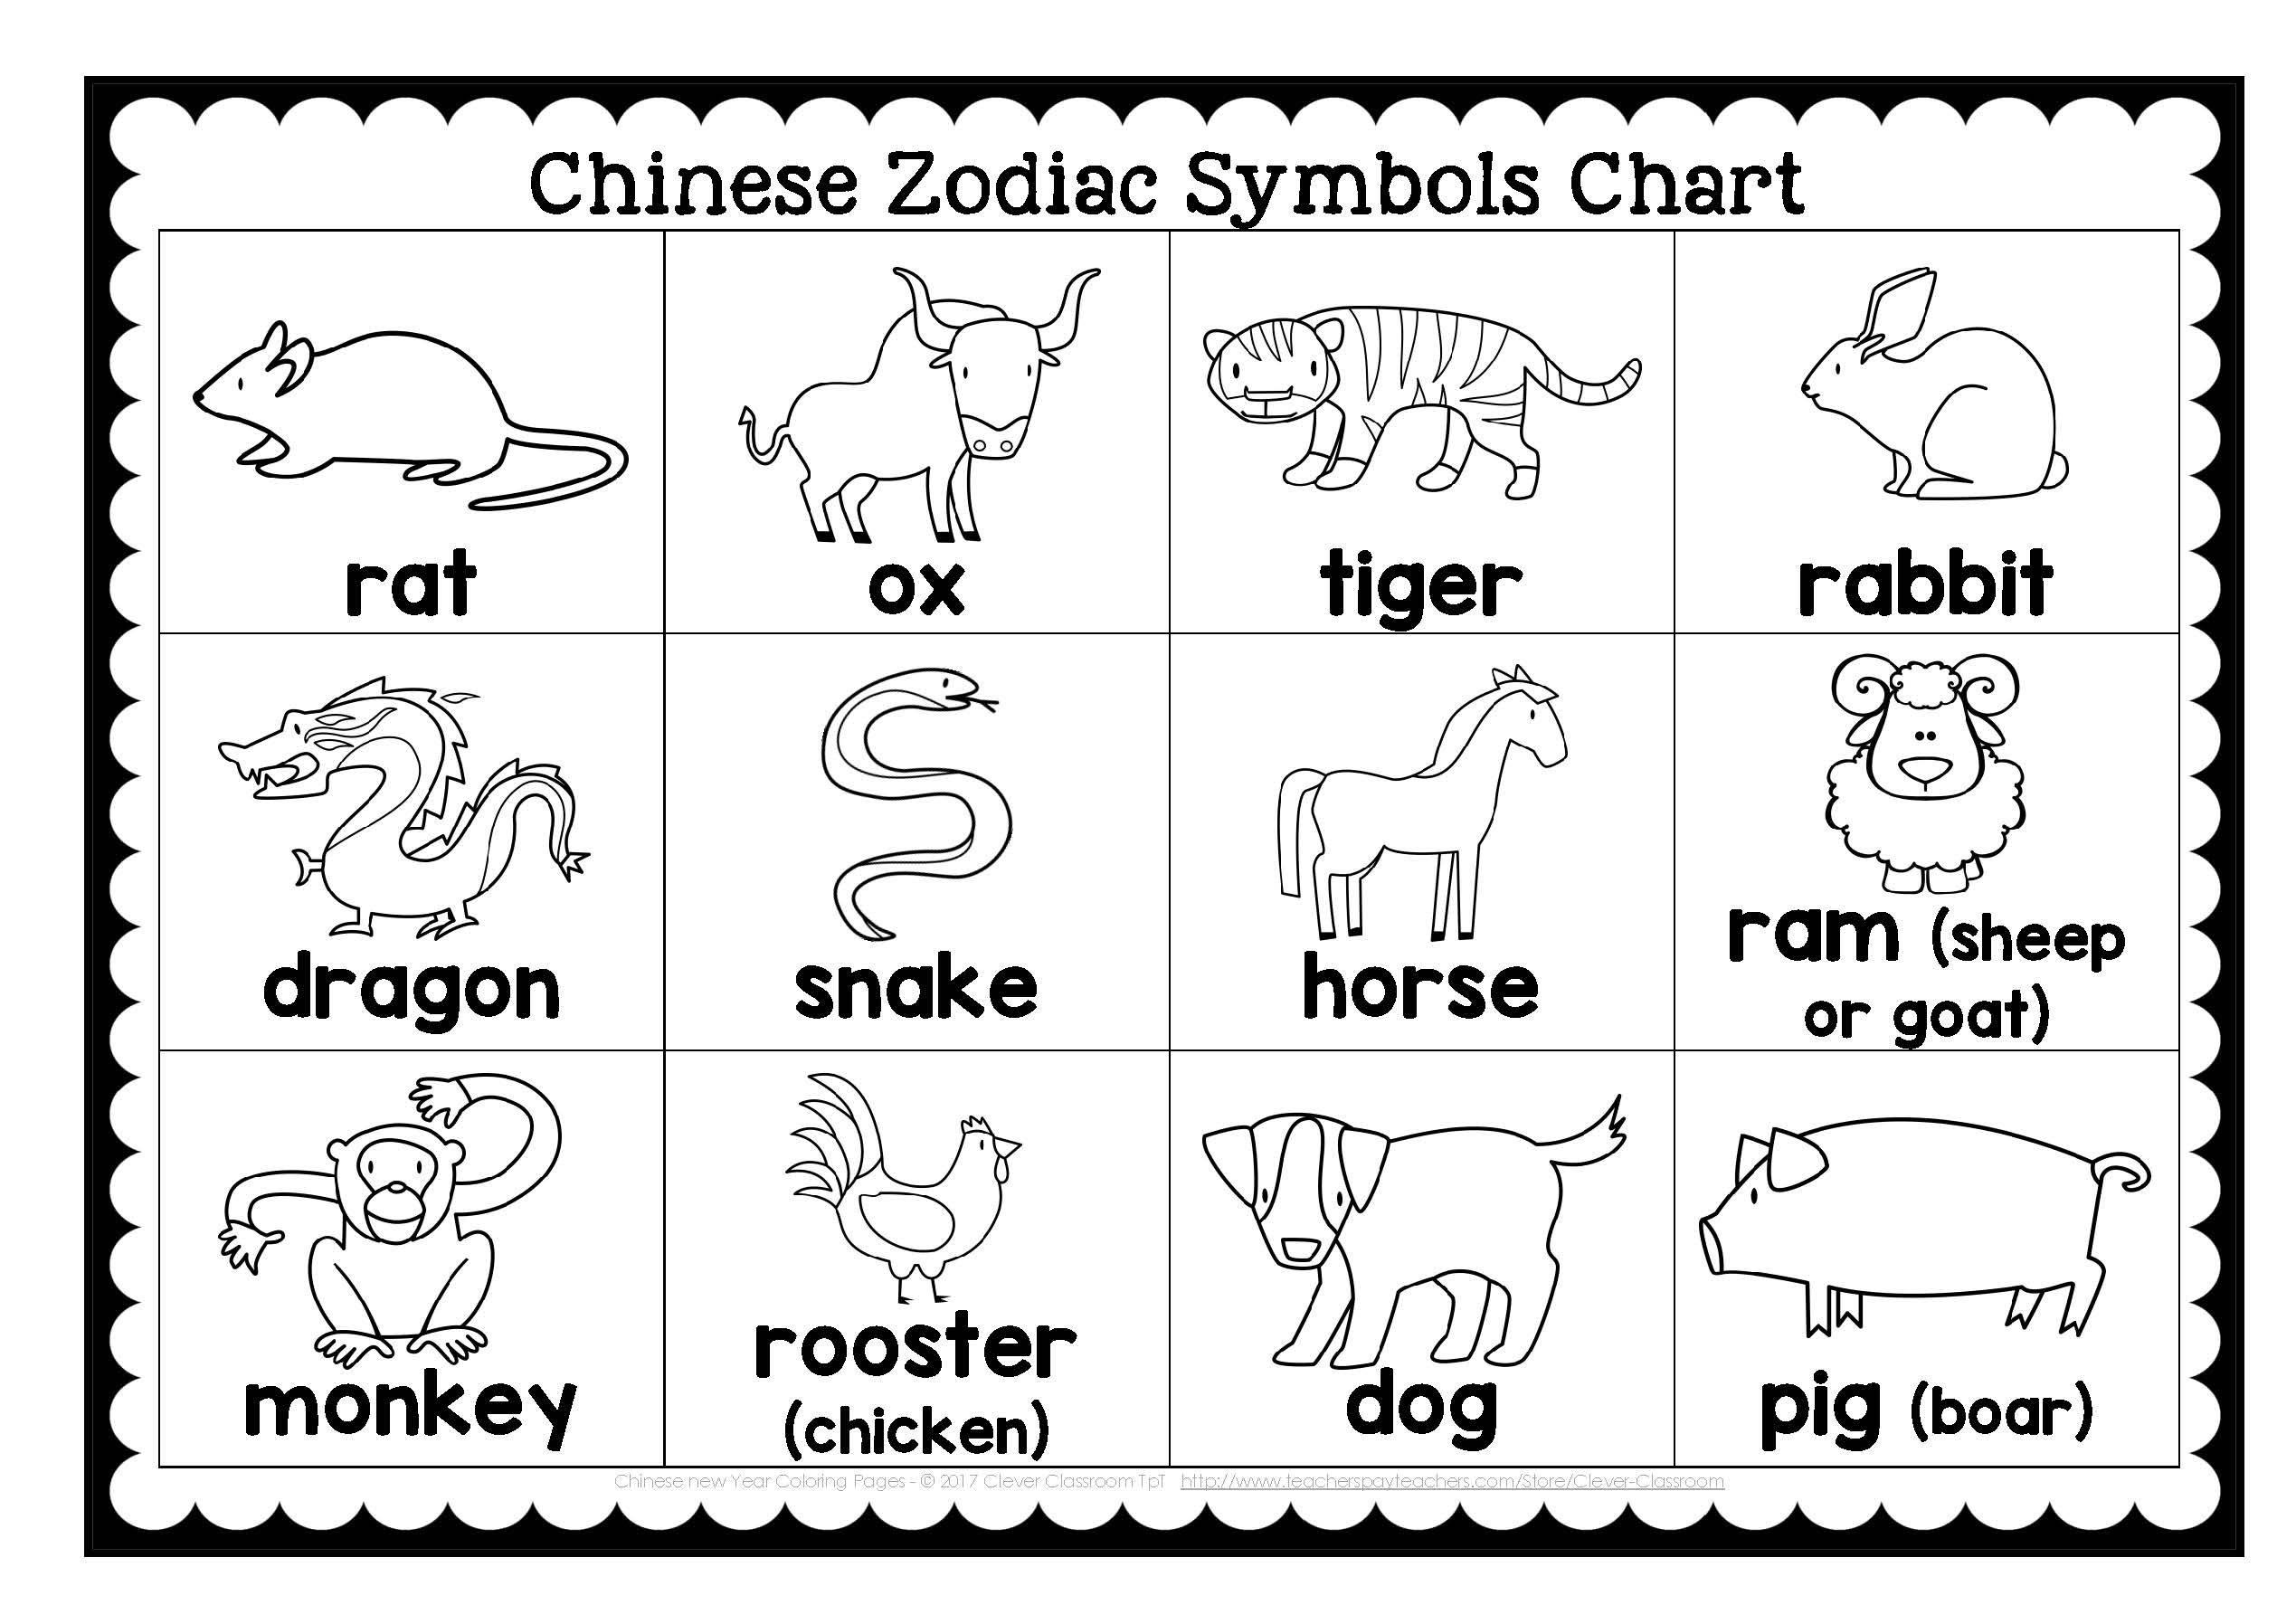 Year Of The Dog Chinese New Year Coloring Pages Vocab And Activities Chinese New Year Zodiac New Year Coloring Pages Chinese Zodiac